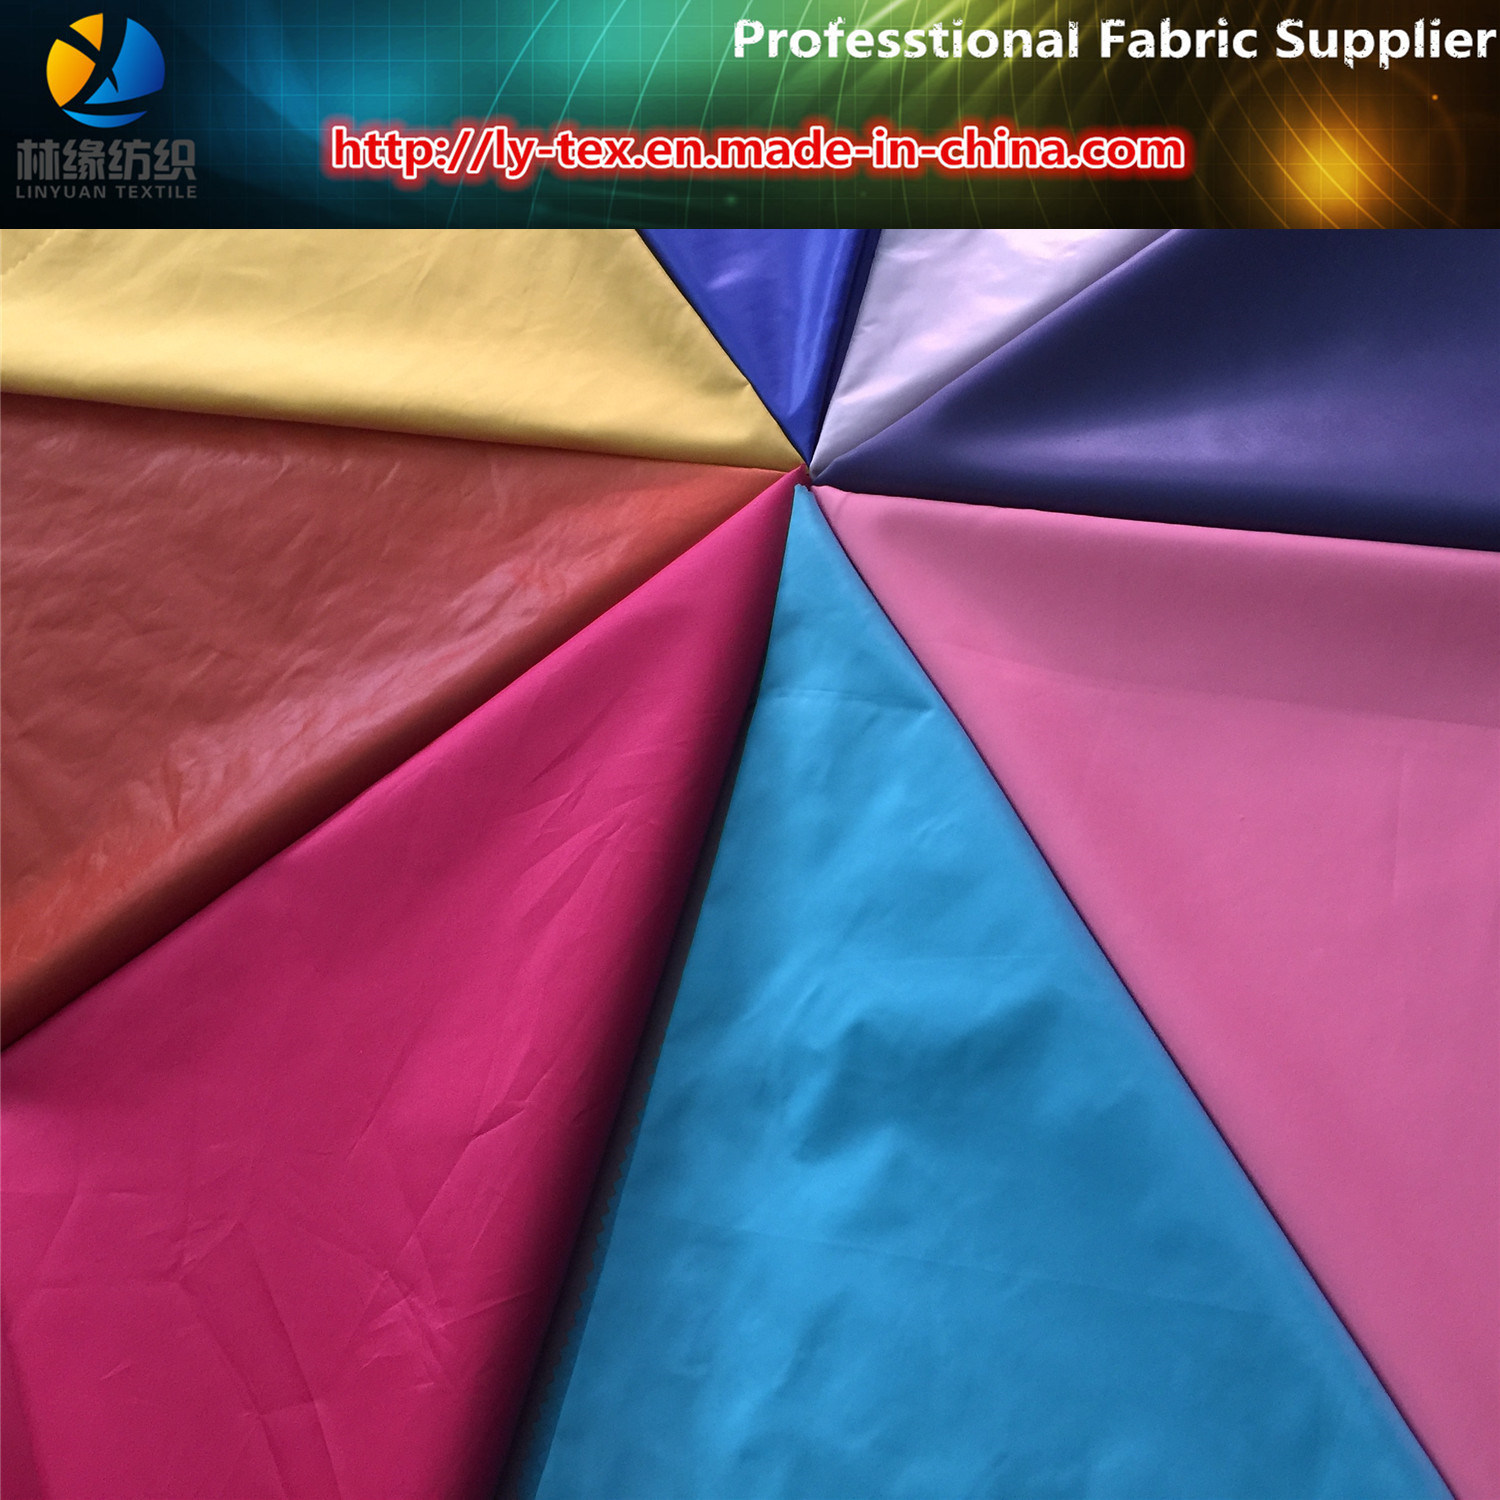 380t Polyester Taffeta, High Density Polyester Fabric for Garment